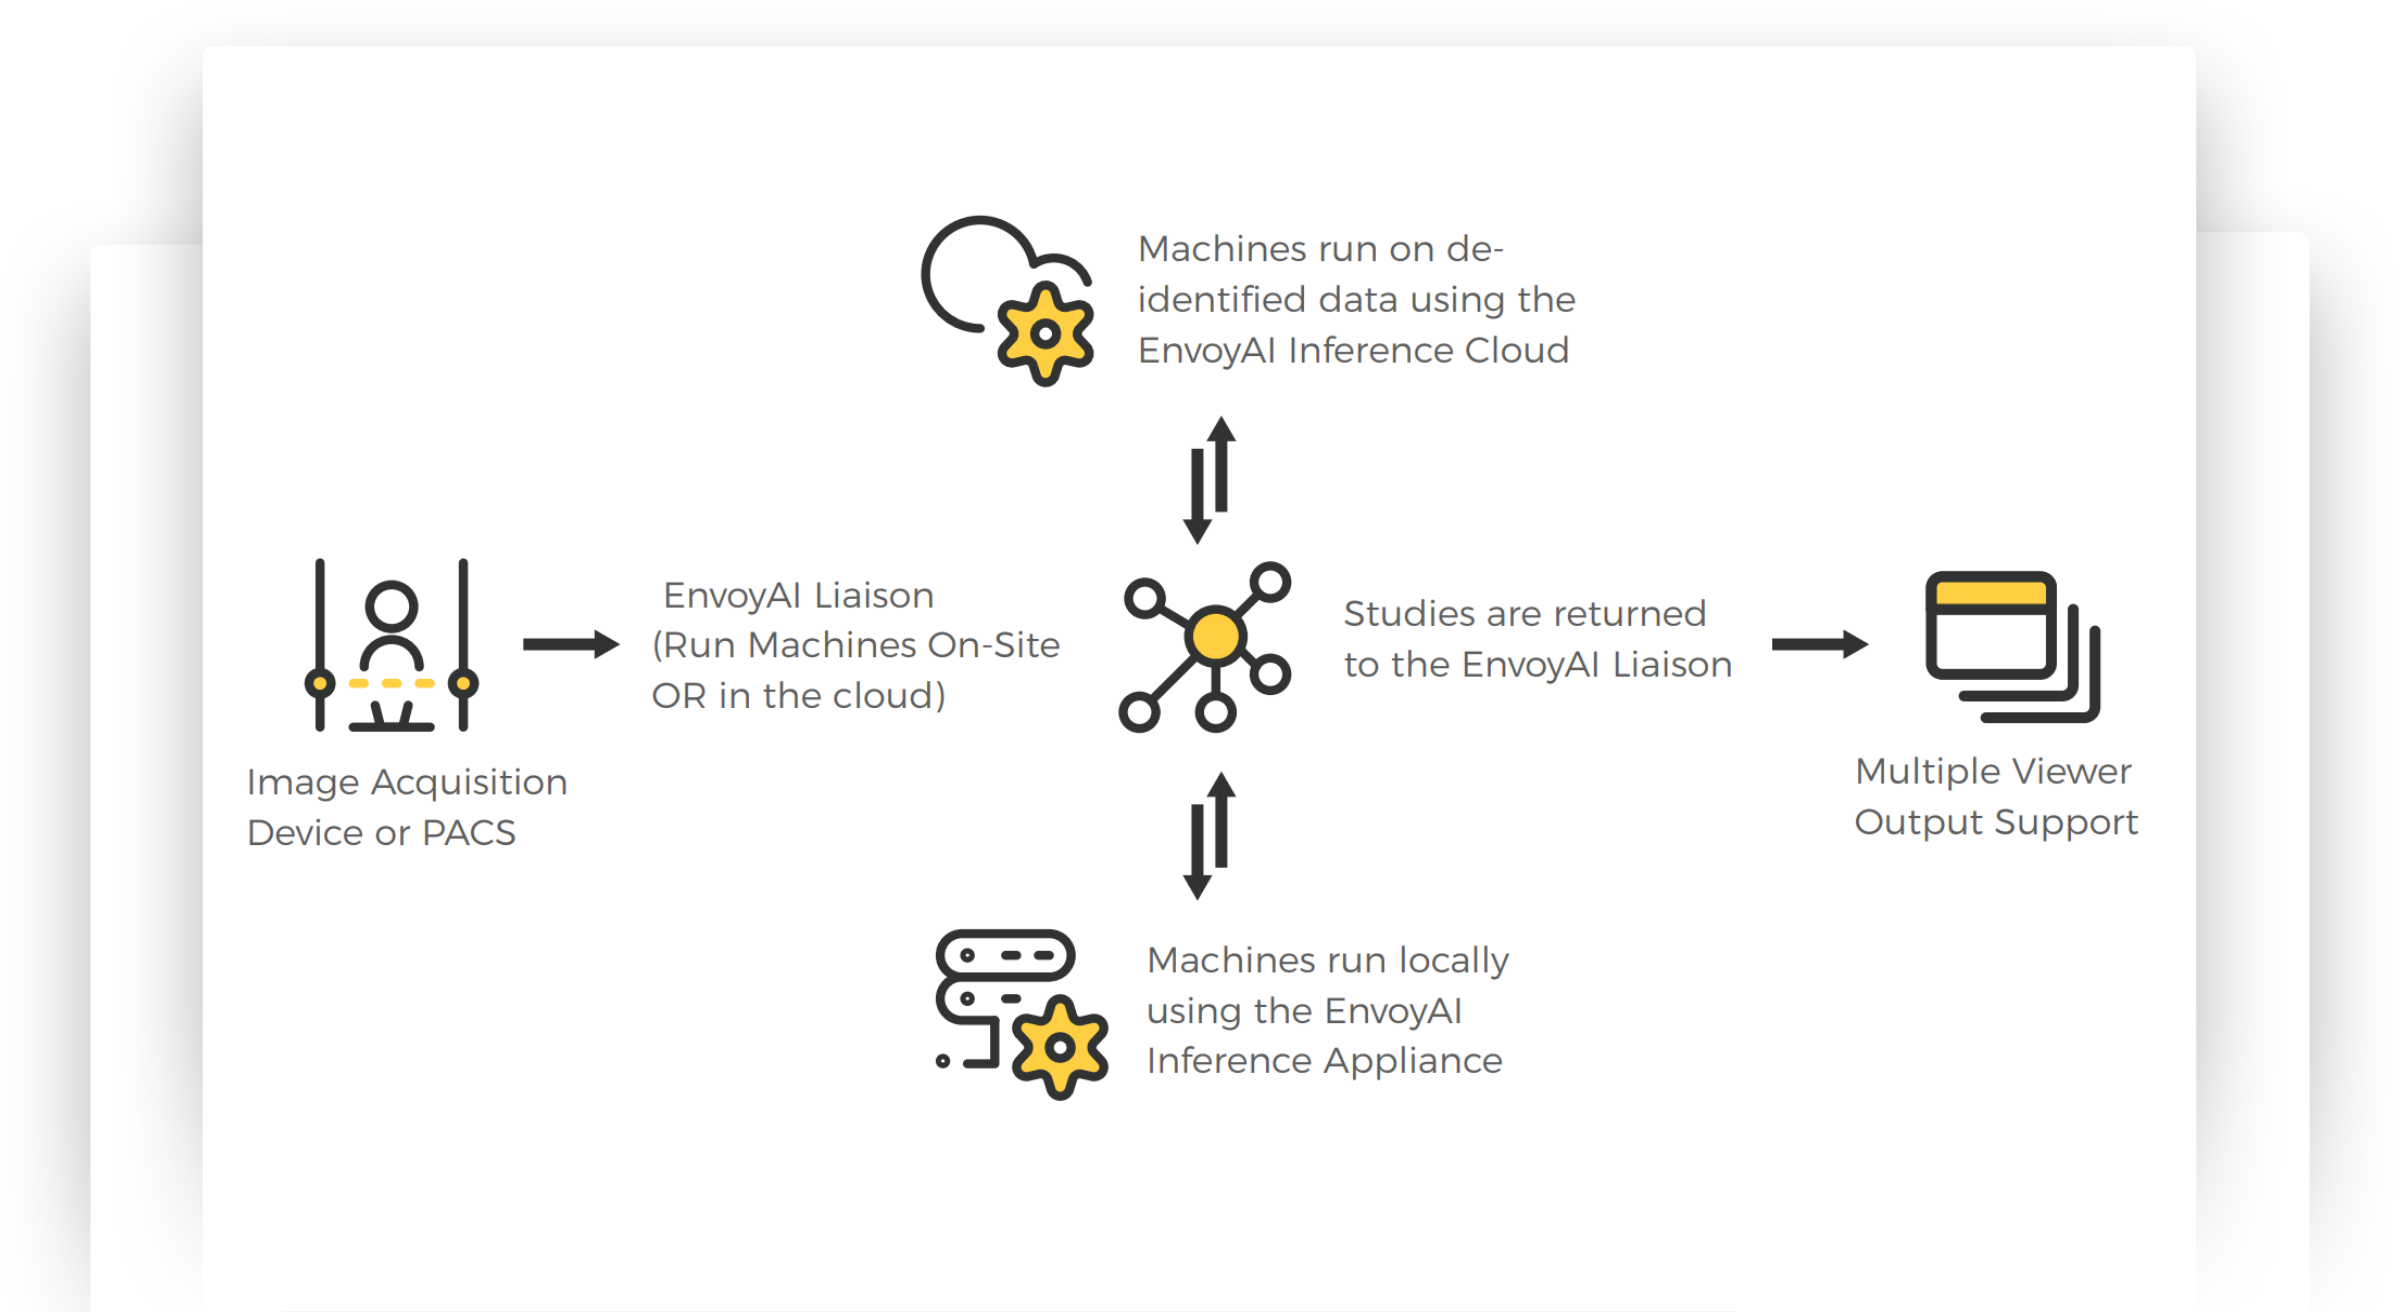 envoyai workflow diagram (1)